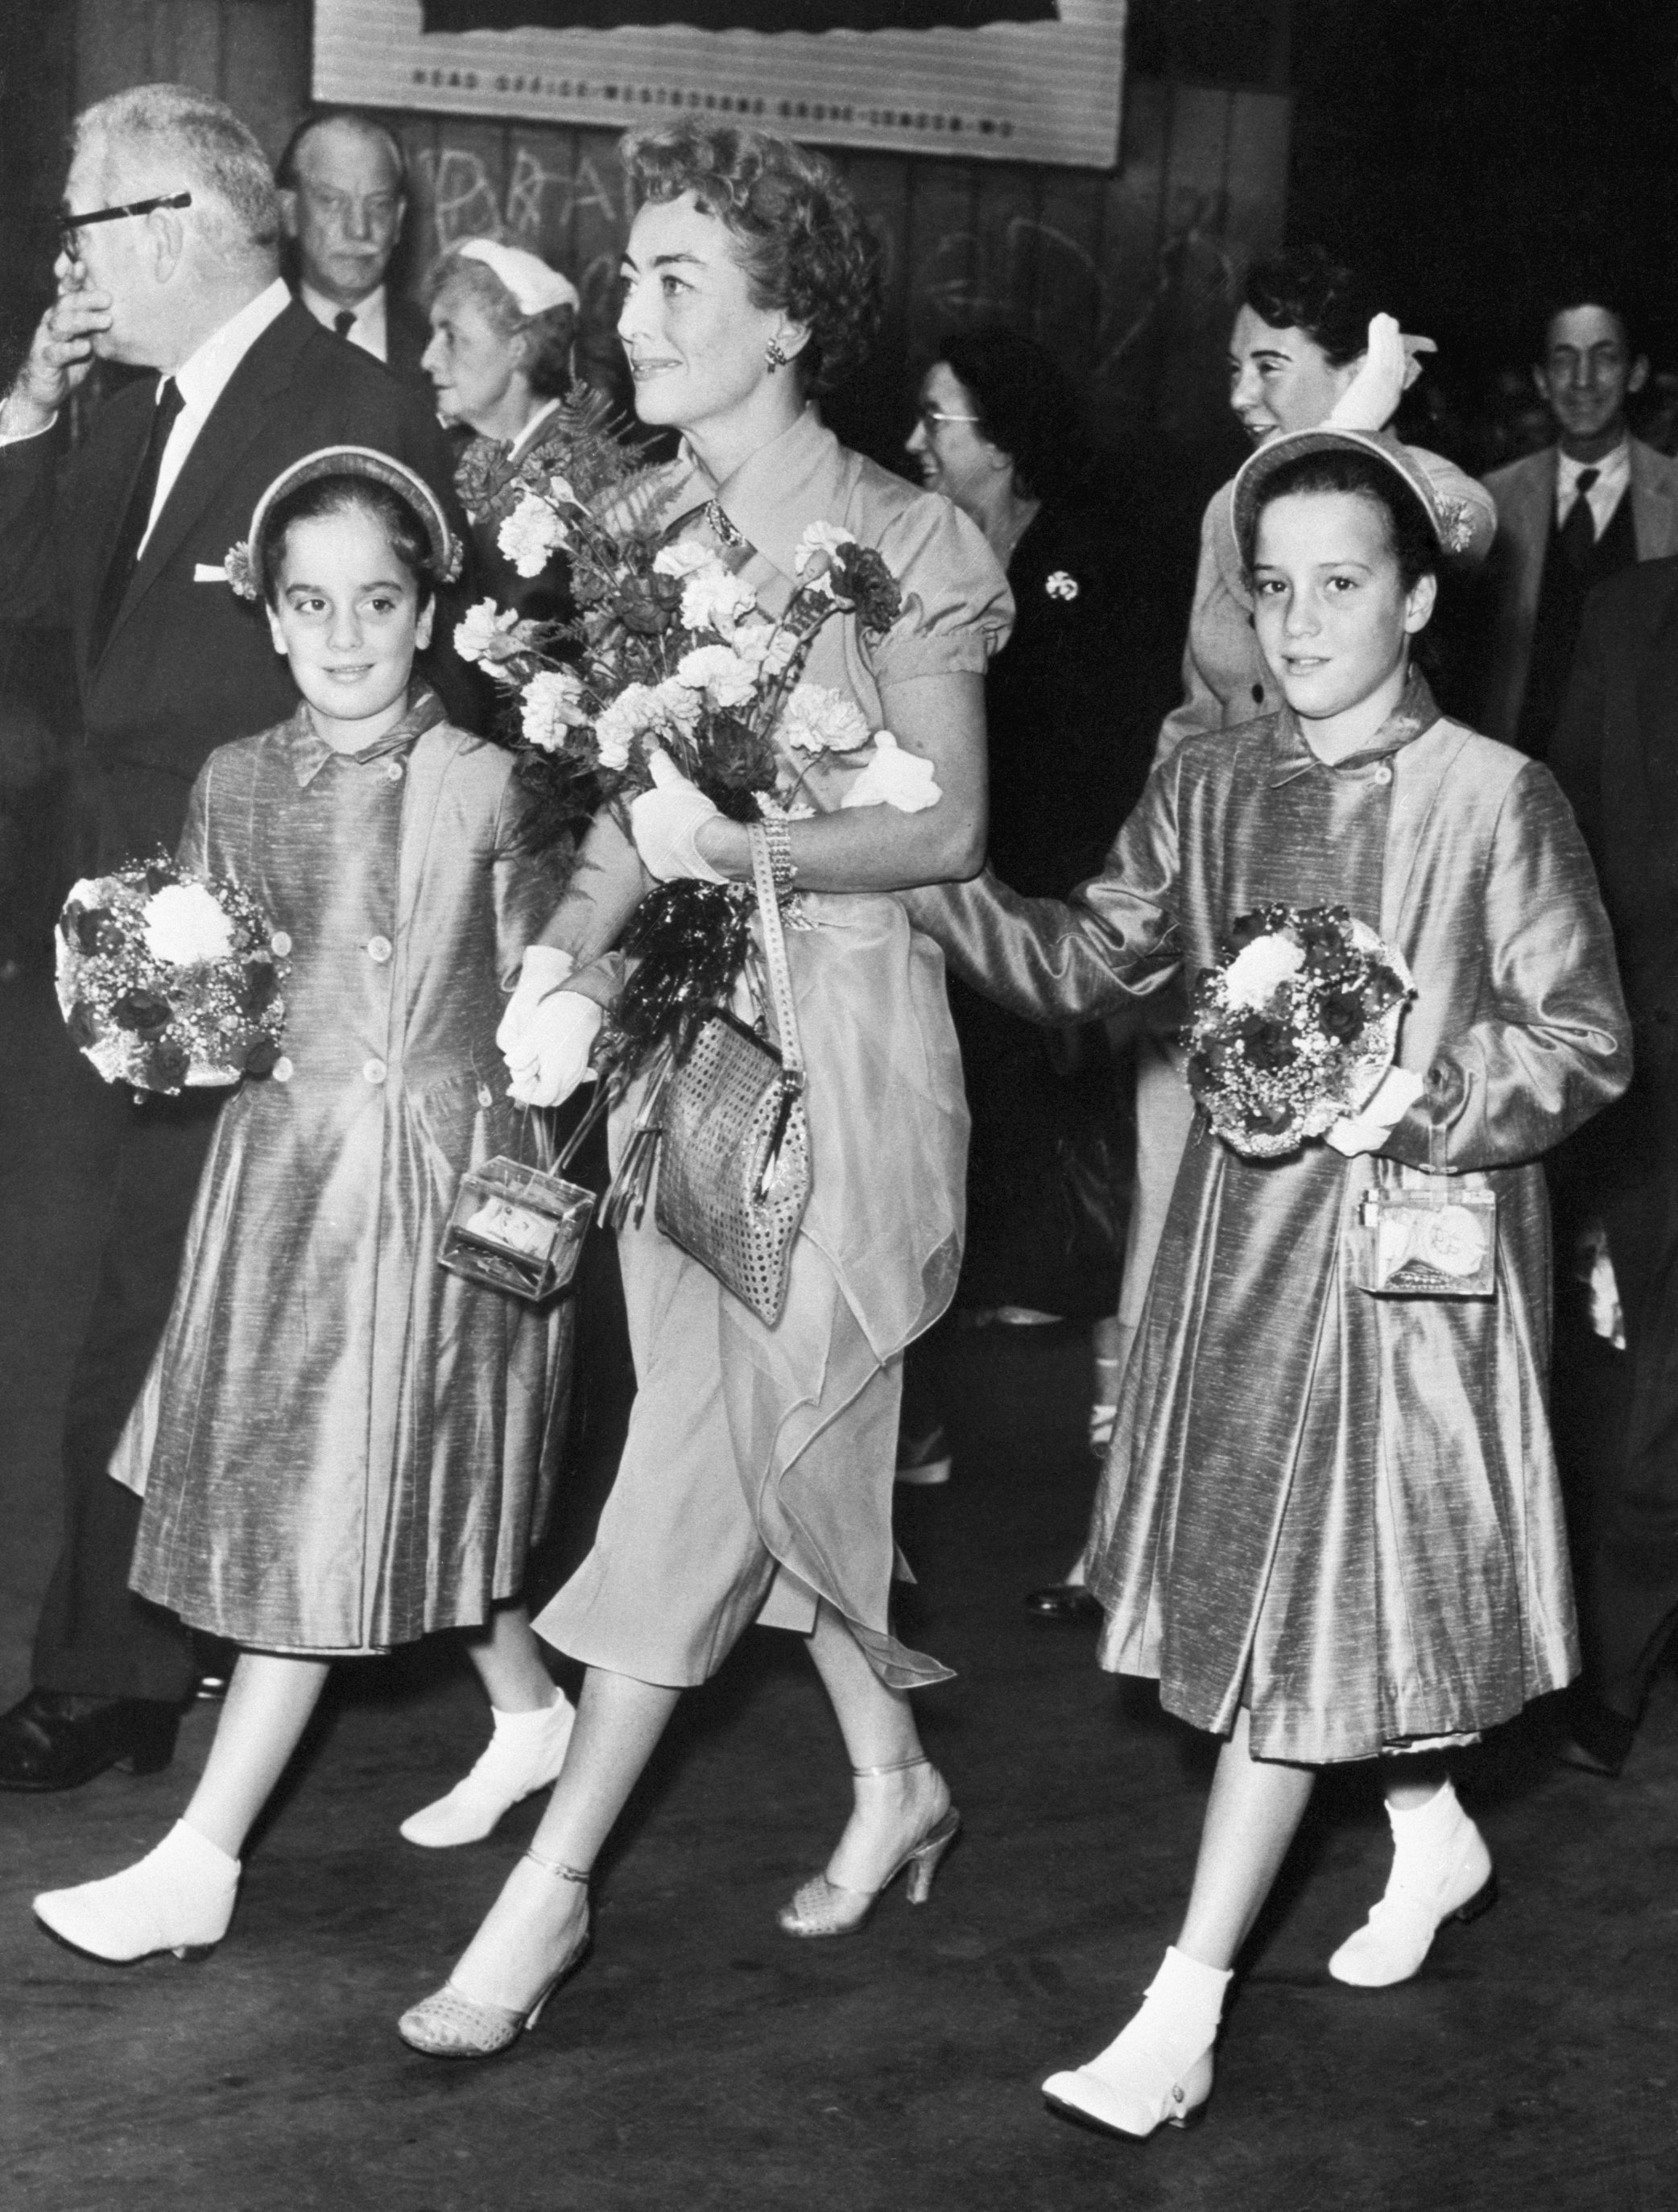 Hollywood actress Joan Crawford strides along the platform of London's Paddington Station with her adopted twin daughters, Cynthia (right) and Cathy, 8/3/56-London, England:   Source: Getty Images